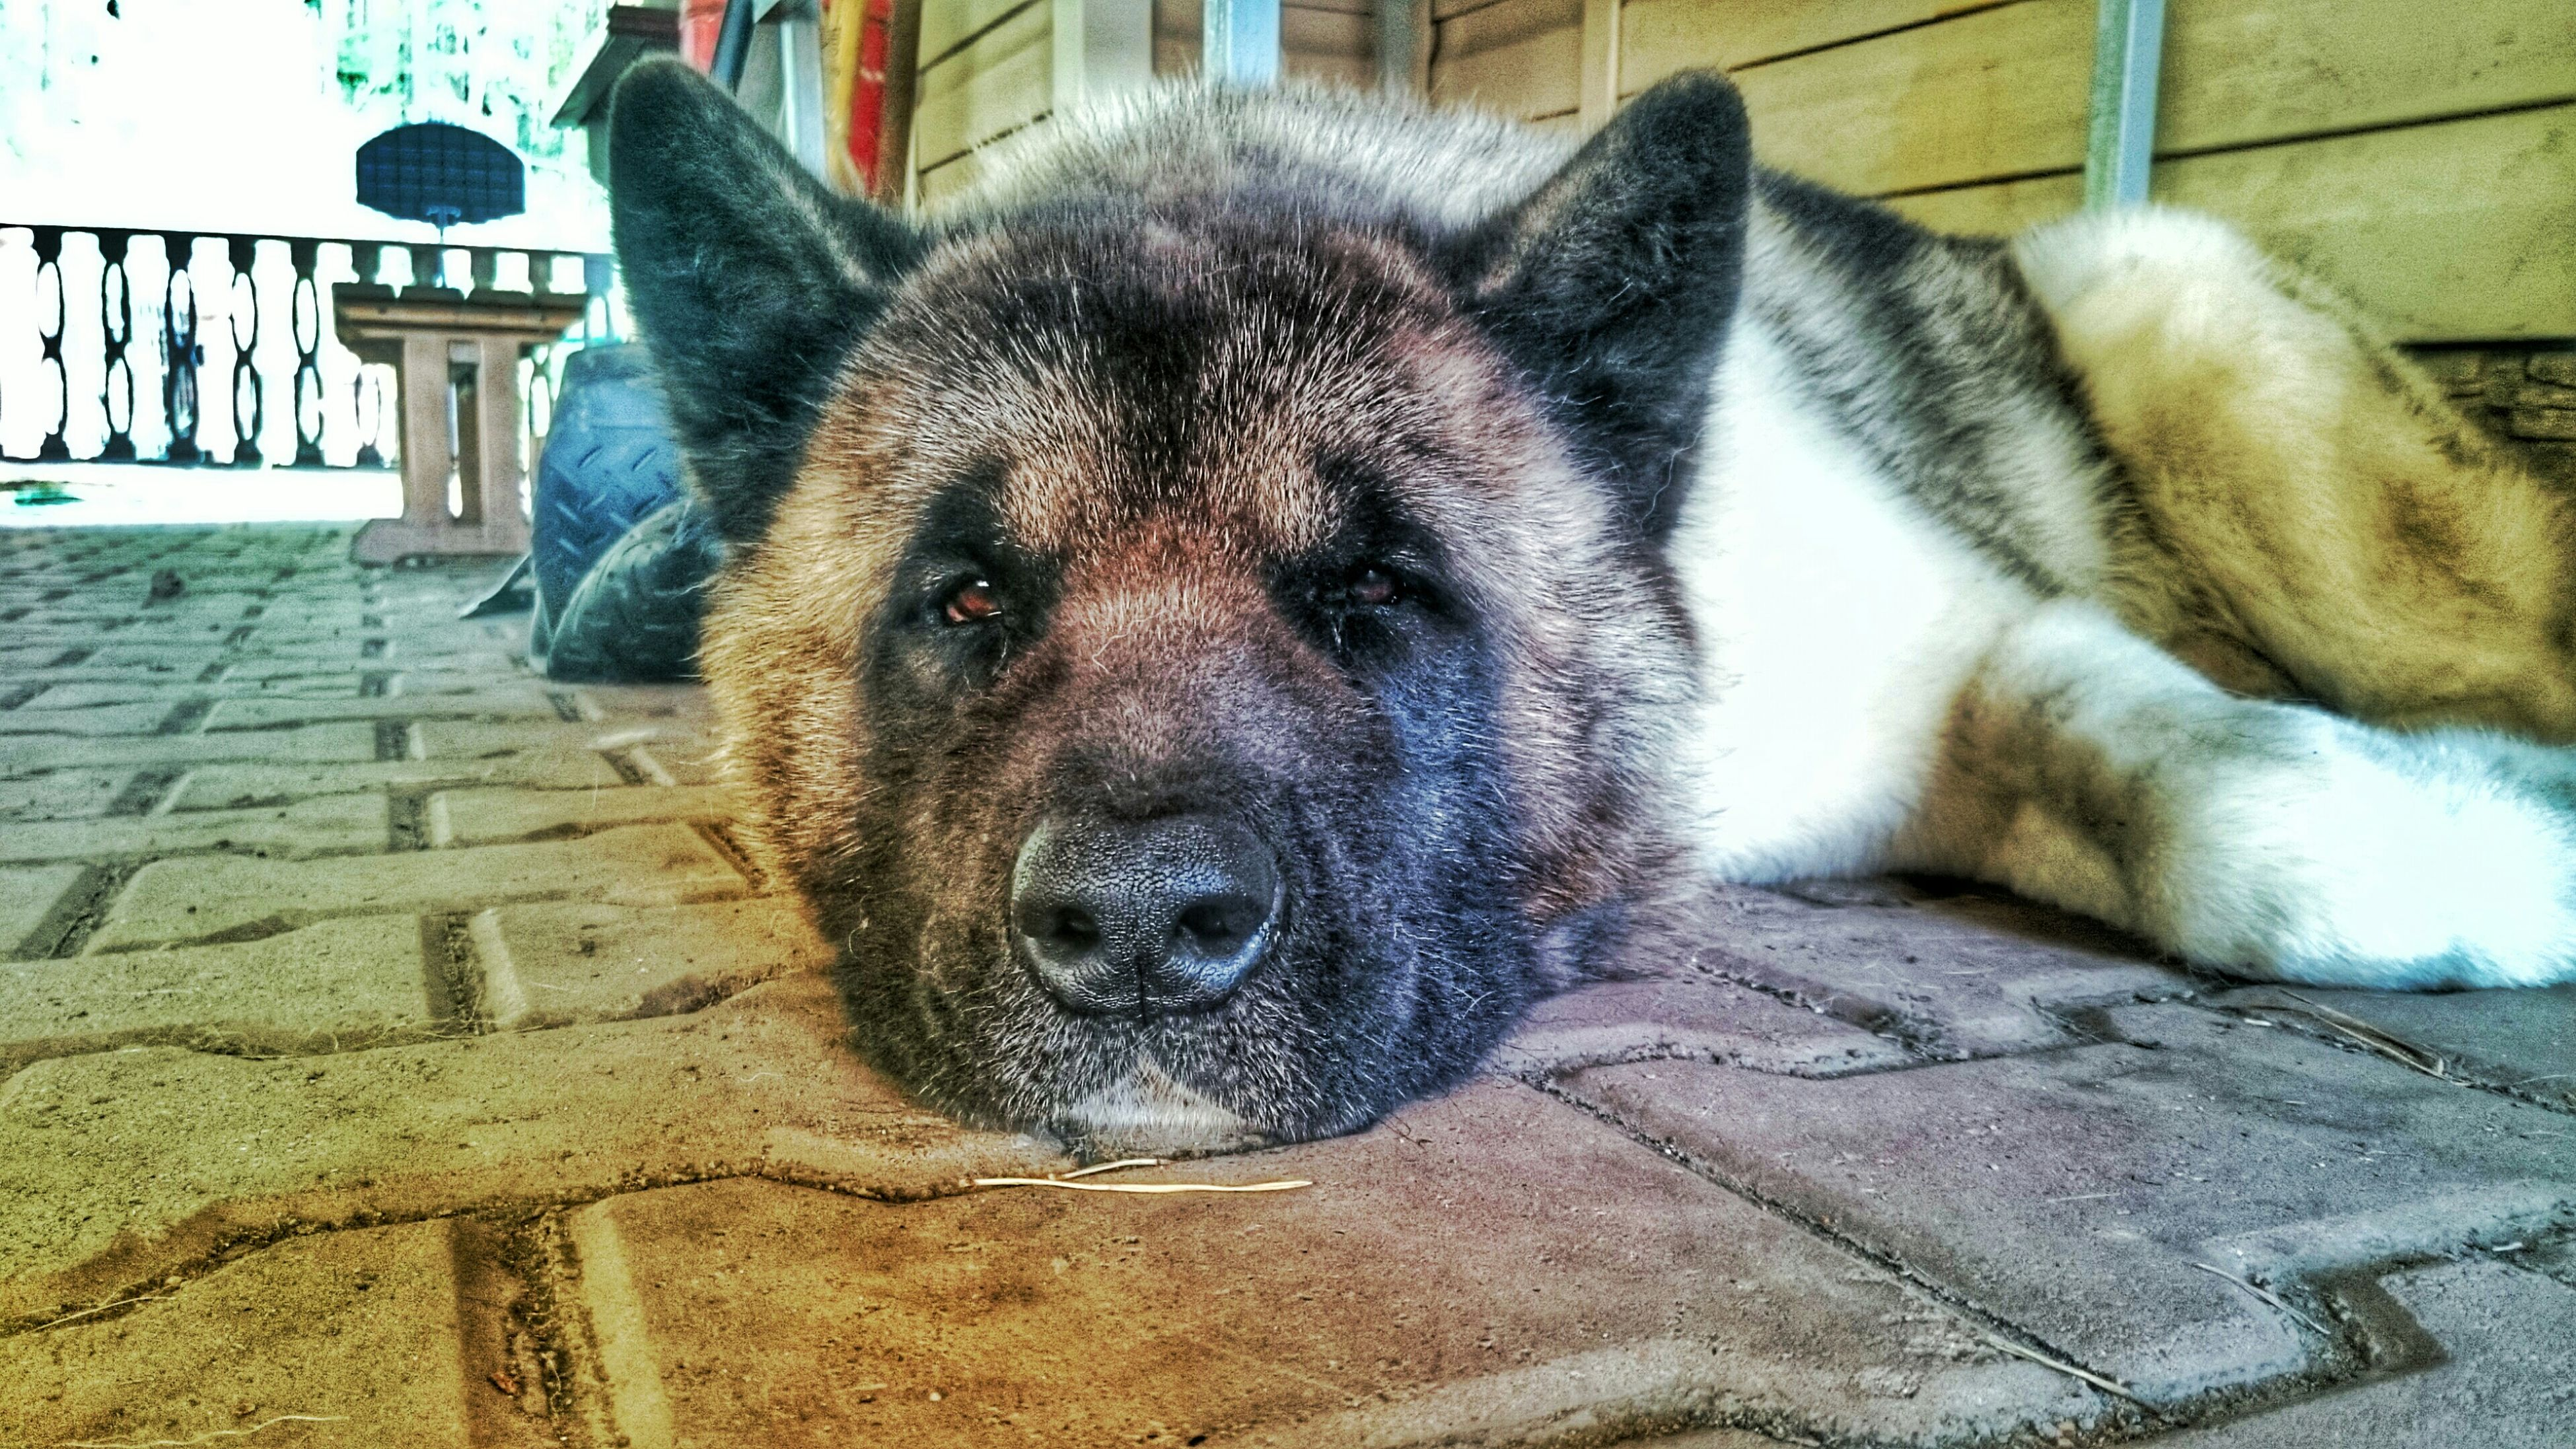 pets, domestic animals, animal themes, mammal, one animal, dog, relaxation, lying down, resting, close-up, sleeping, animal head, indoors, no people, portrait, zoology, looking at camera, eyes closed, animal, high angle view